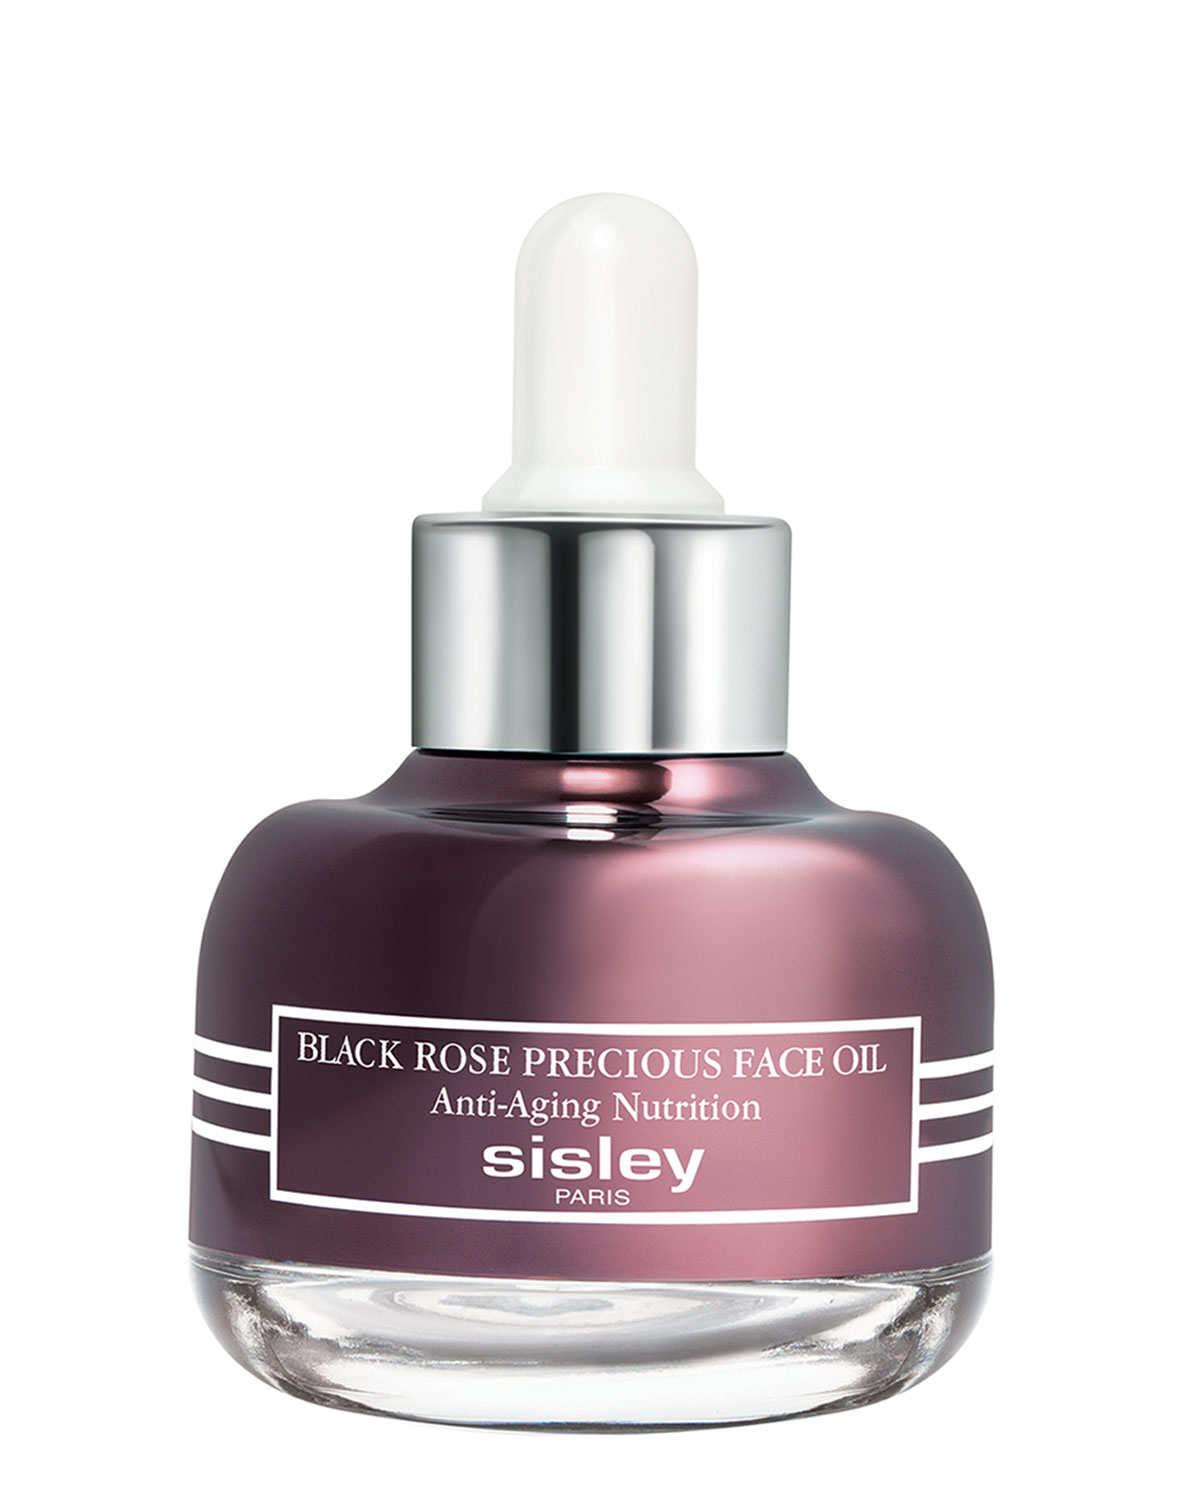 Black Rose Precious Face Oil, 25 mL NM Beauty Award Winner 2015 - Sisley-Paris